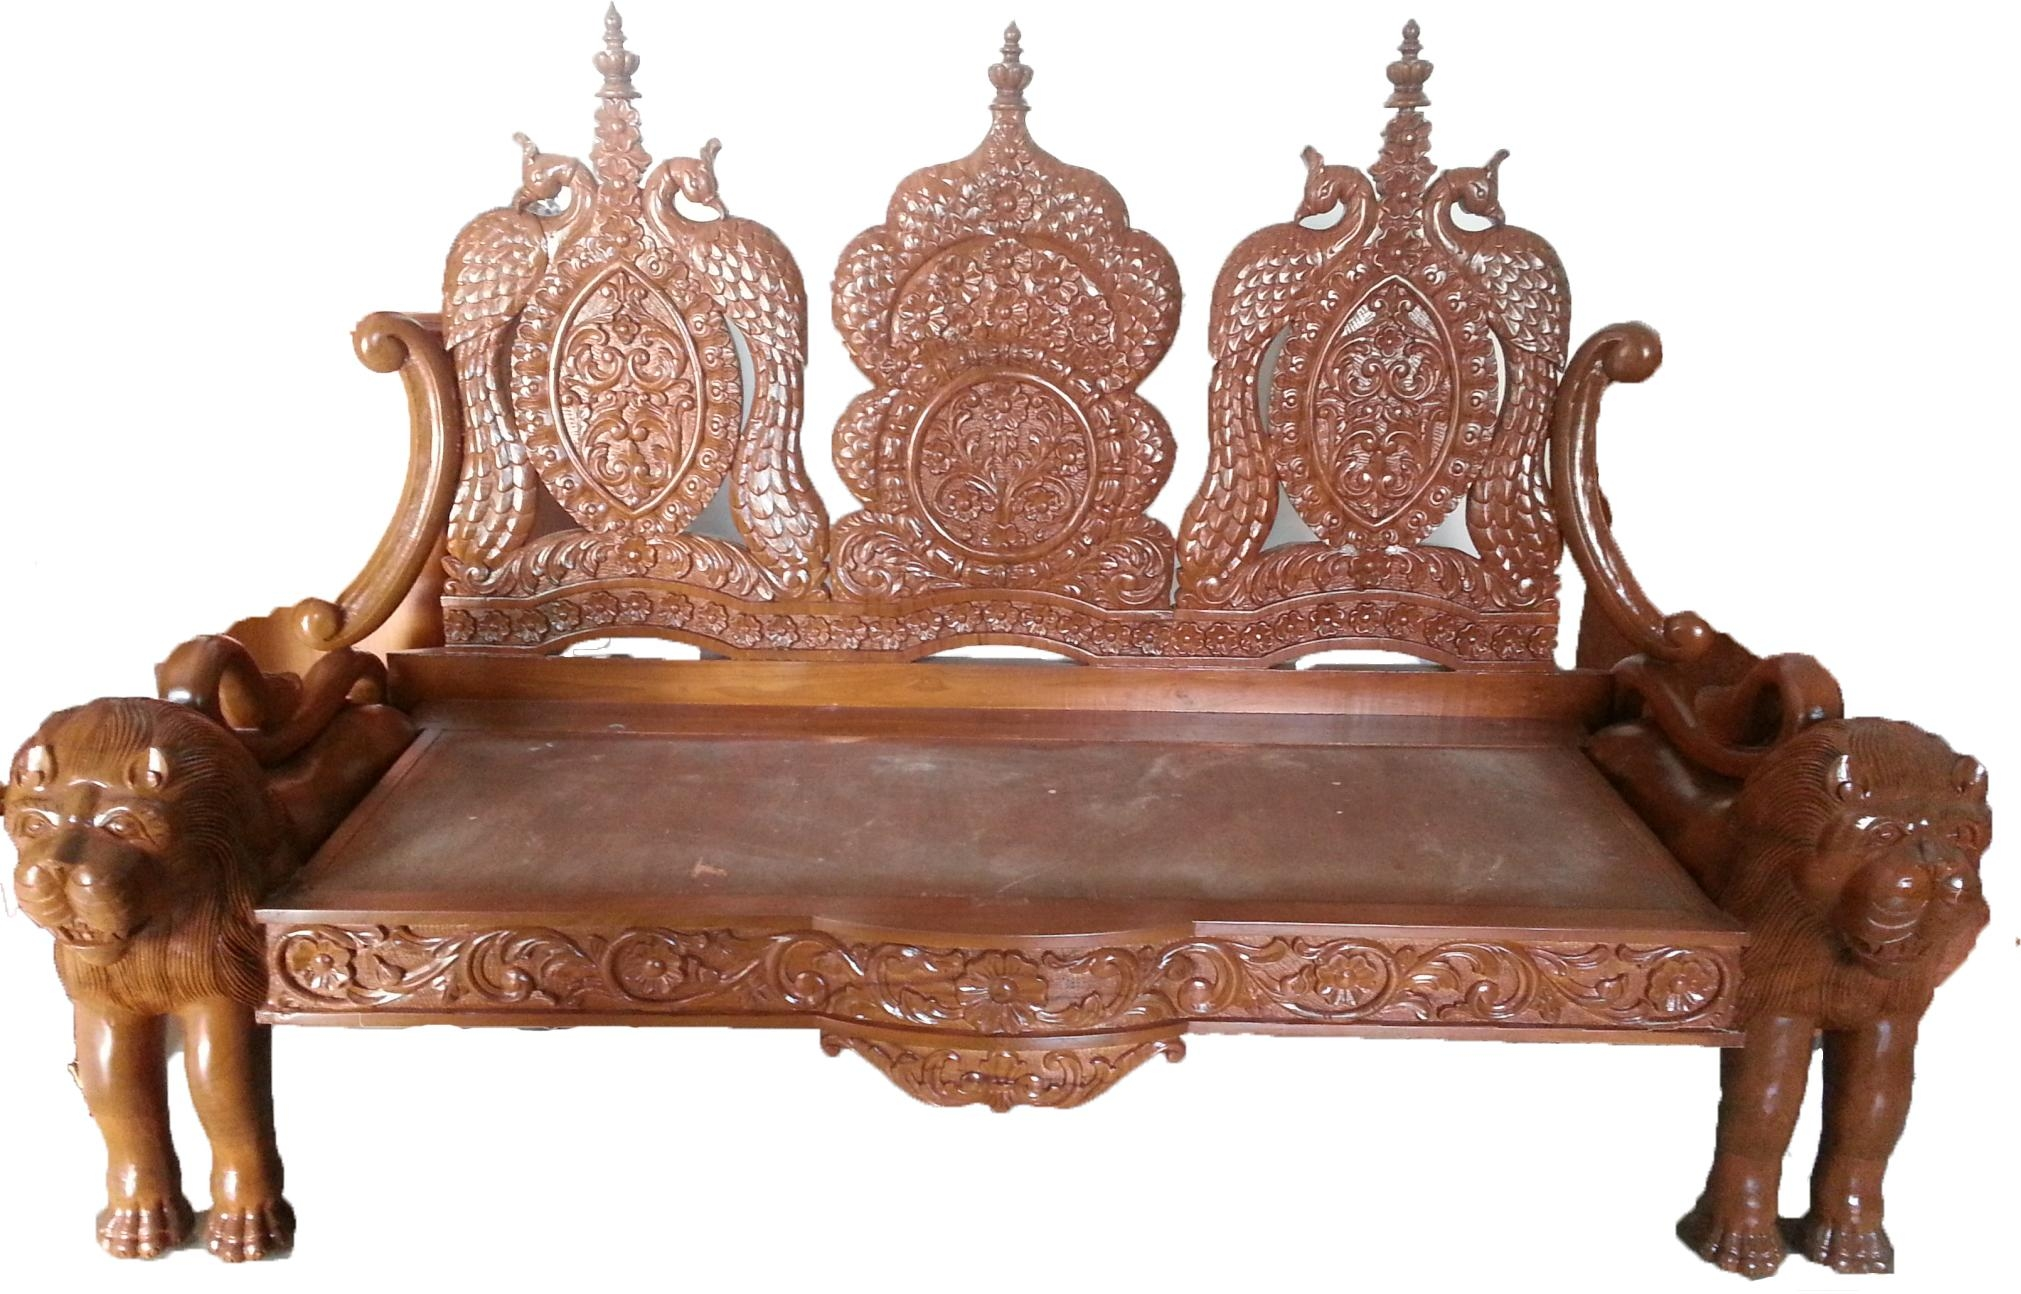 Lion Carving Wooden Sofa | Indiabizclub Intended For Carved Wood Sofas (Image 14 of 20)